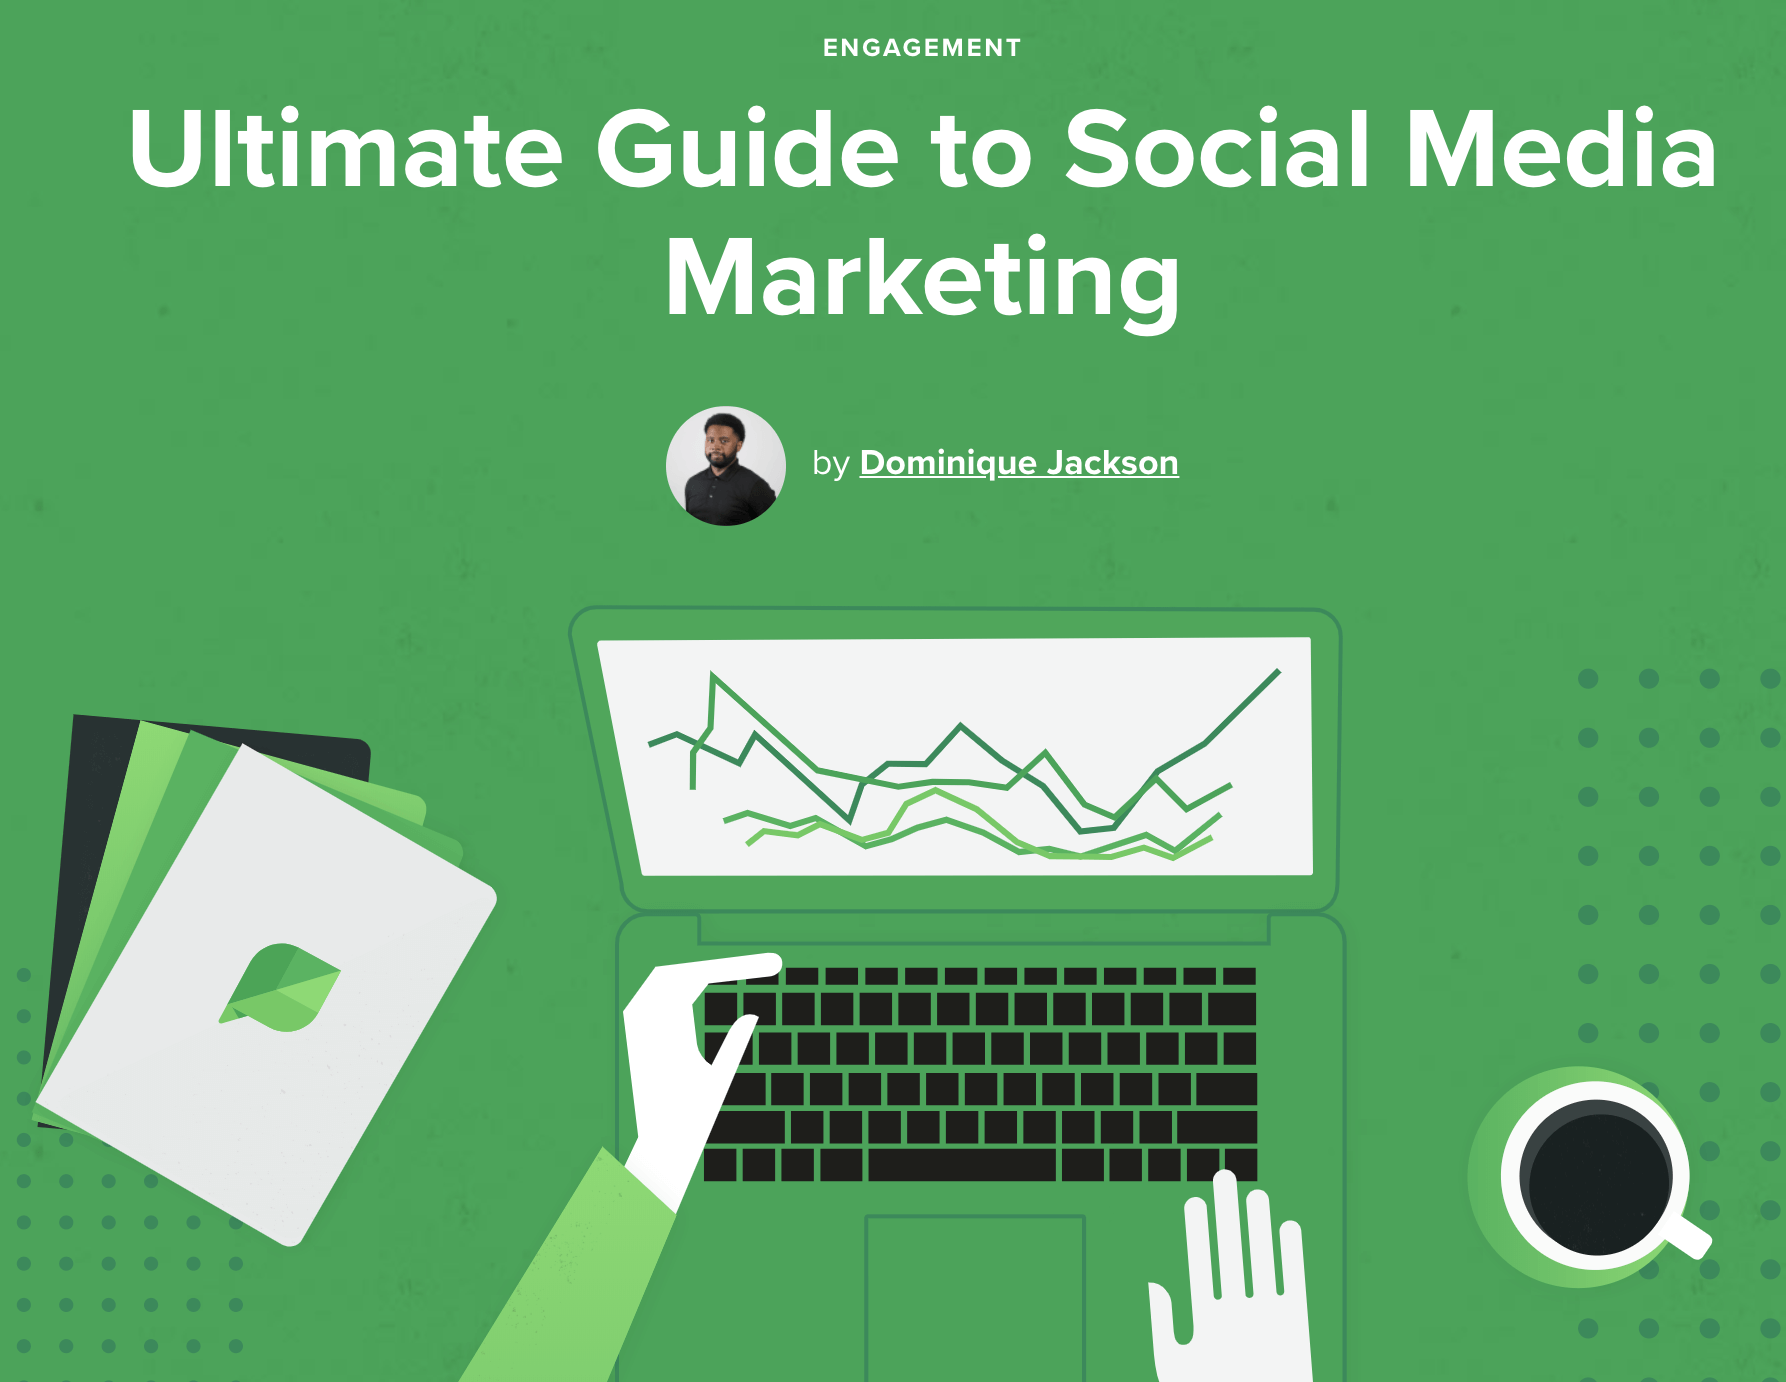 Ultimate Guide to Social Media